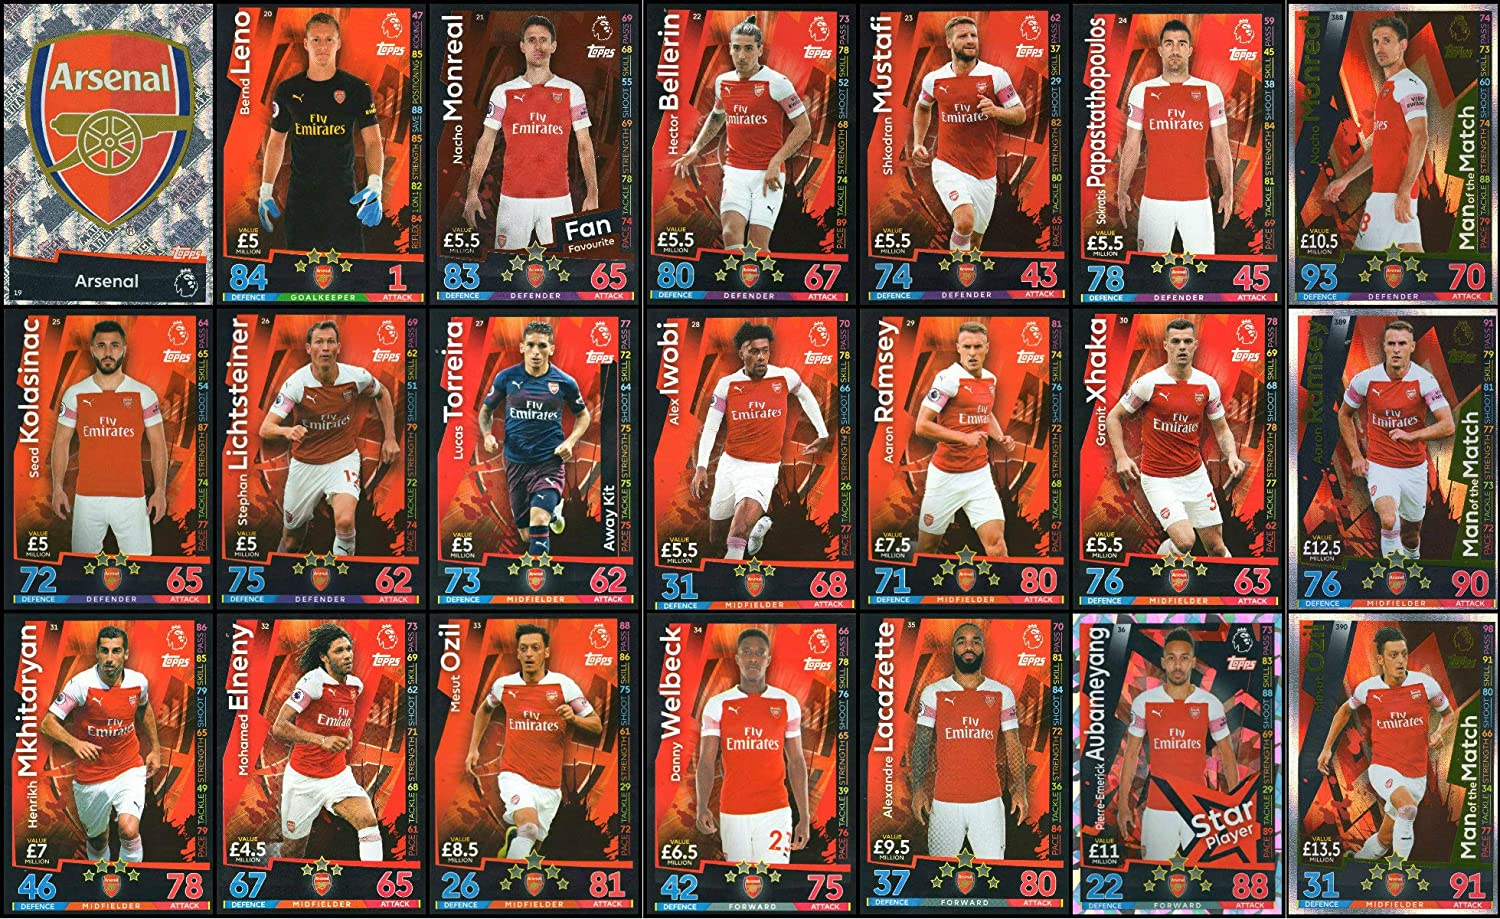 Match Attax 18//19 Alex iwobi Arsenal tarjeta base Nº 28